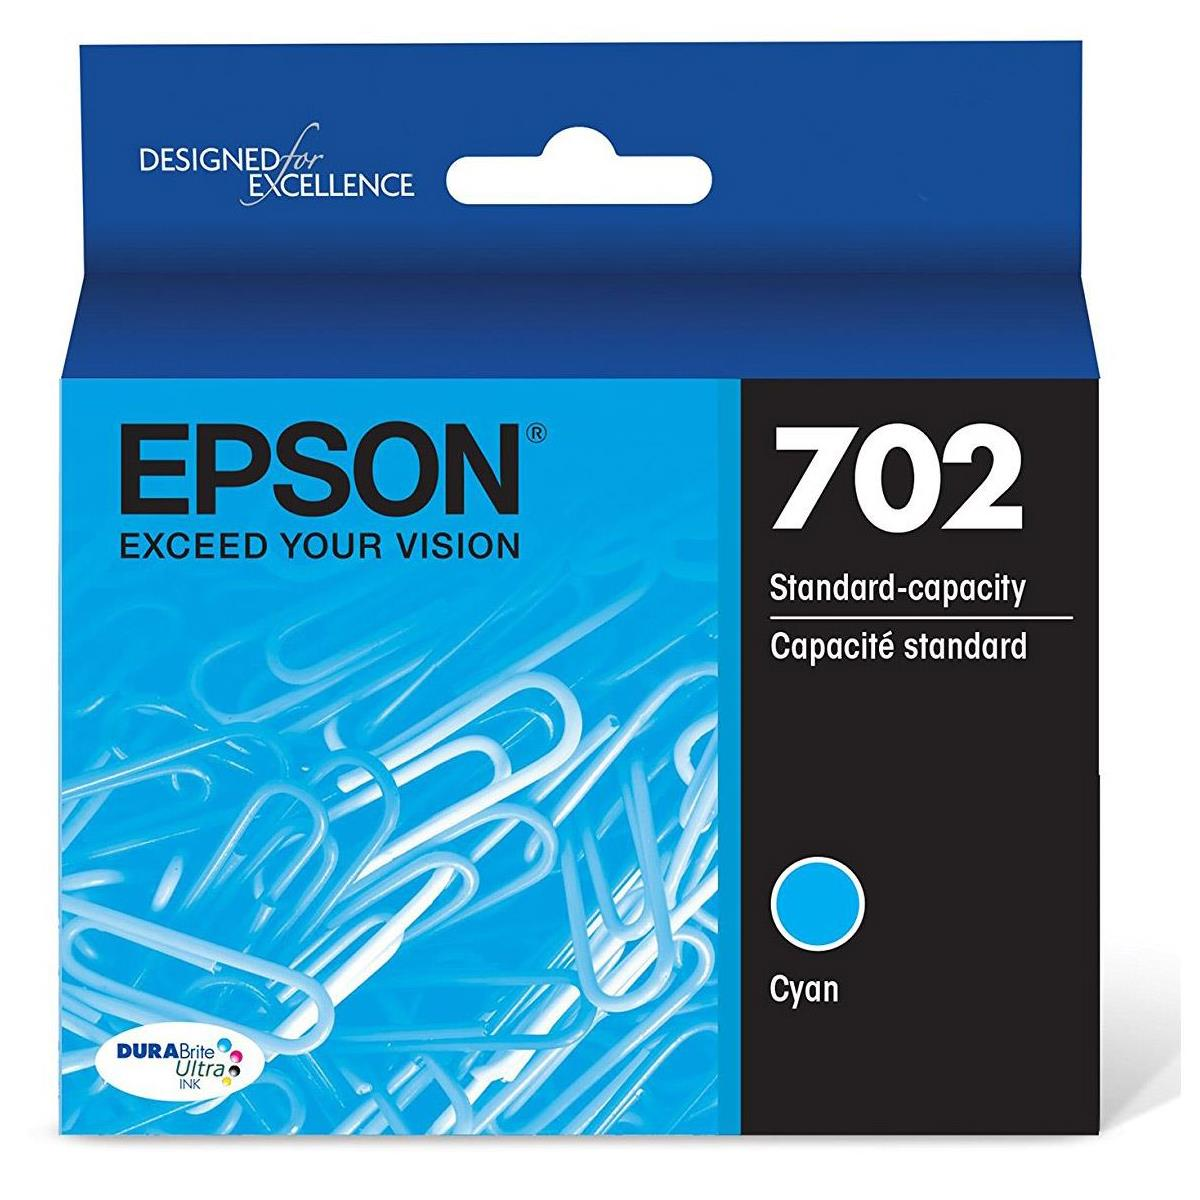 Epson T702220 Cyan Ink Cartridge